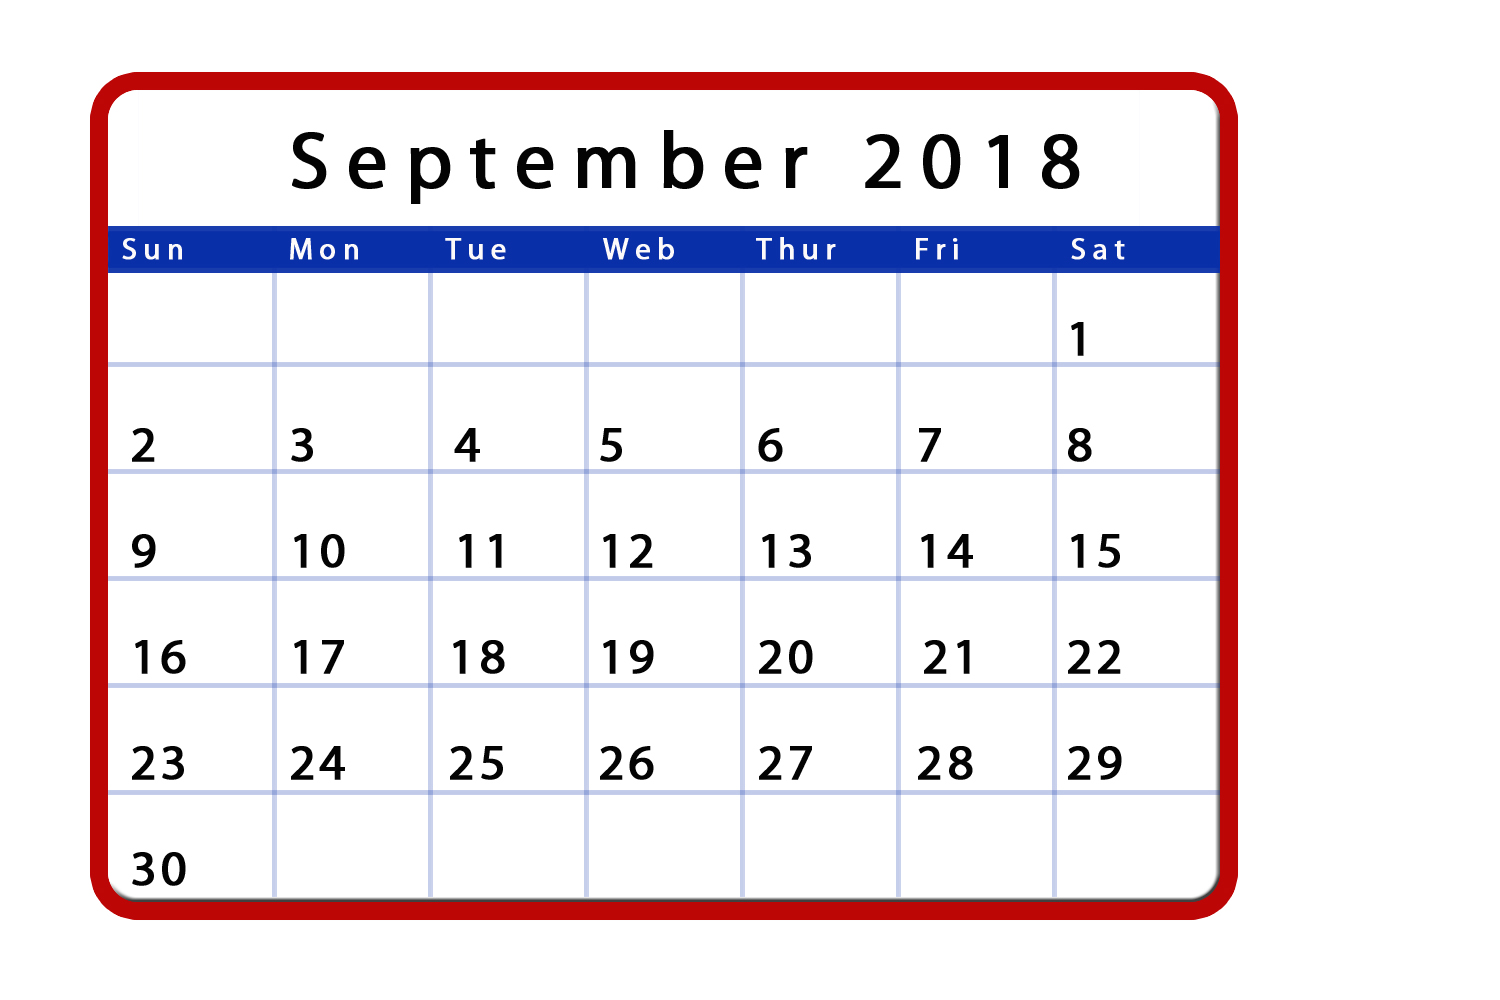 September 2018 Page Calendar to Print